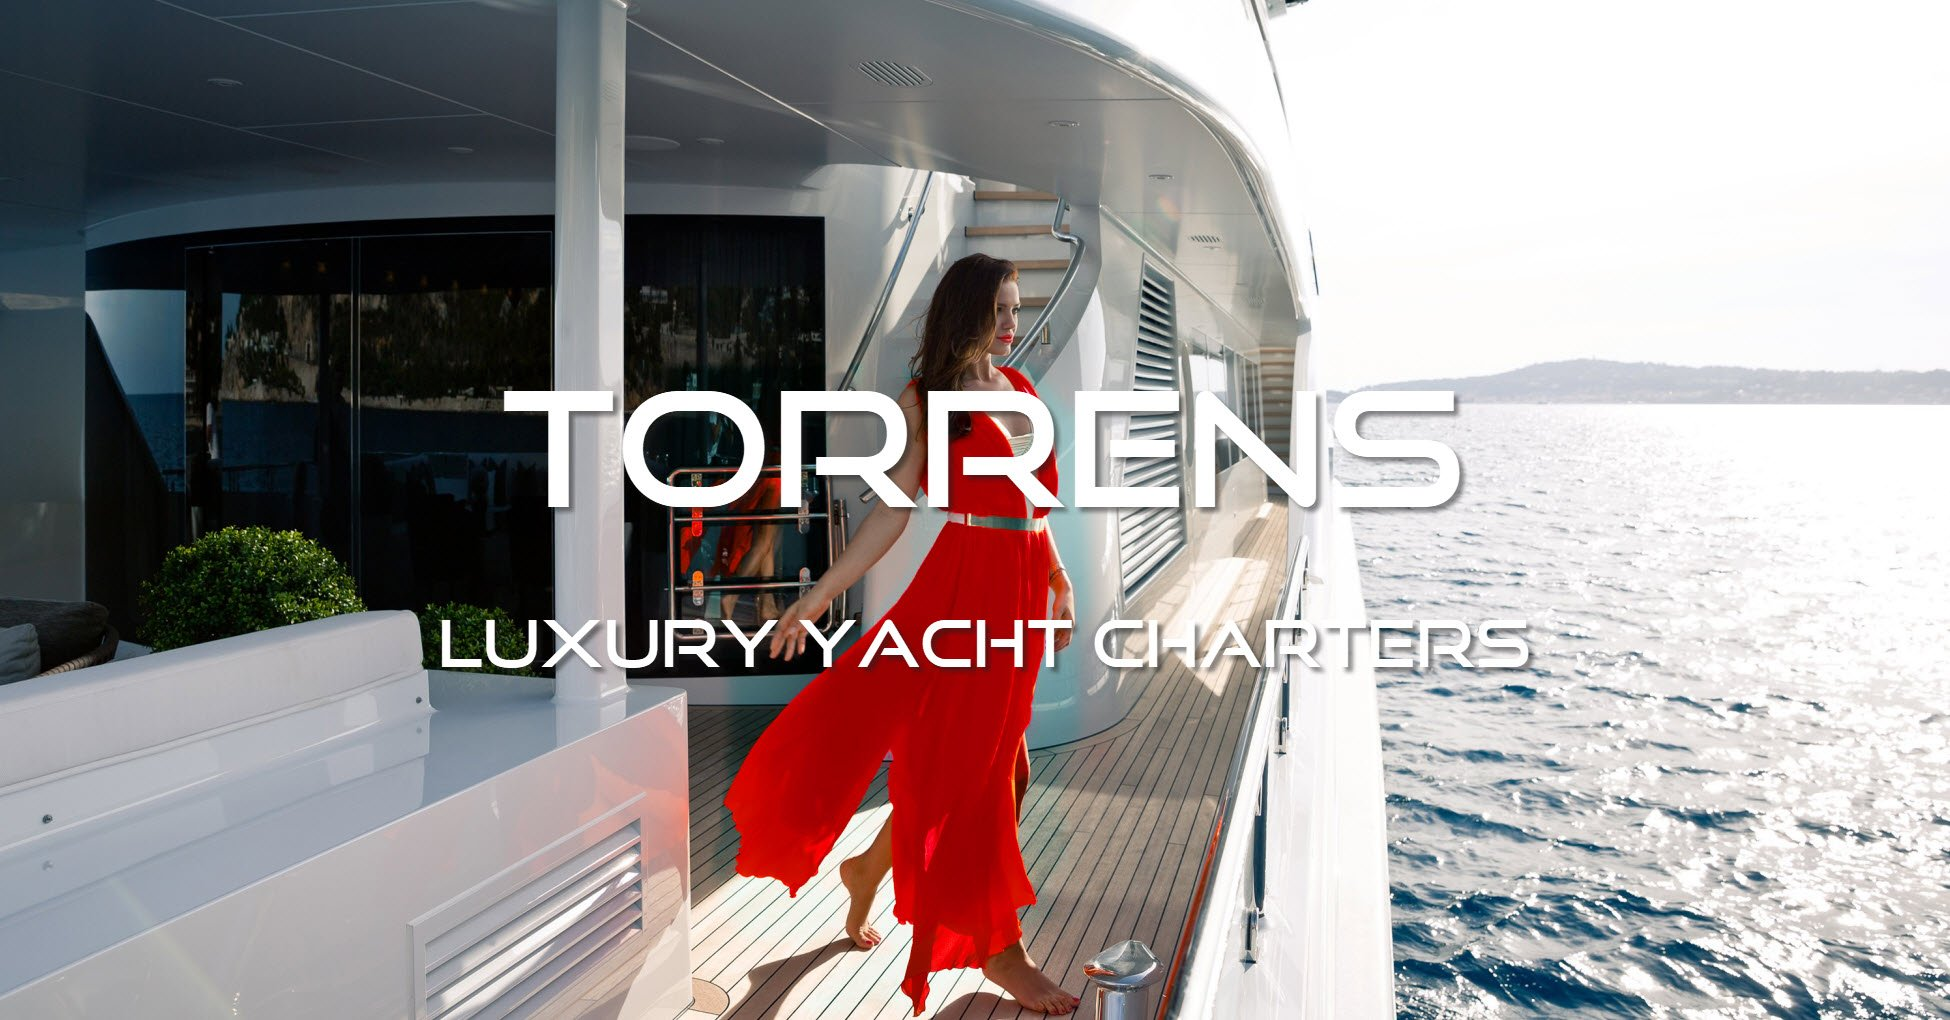 Yacht Charters - Torrens Luxury Collection 1300 148 648